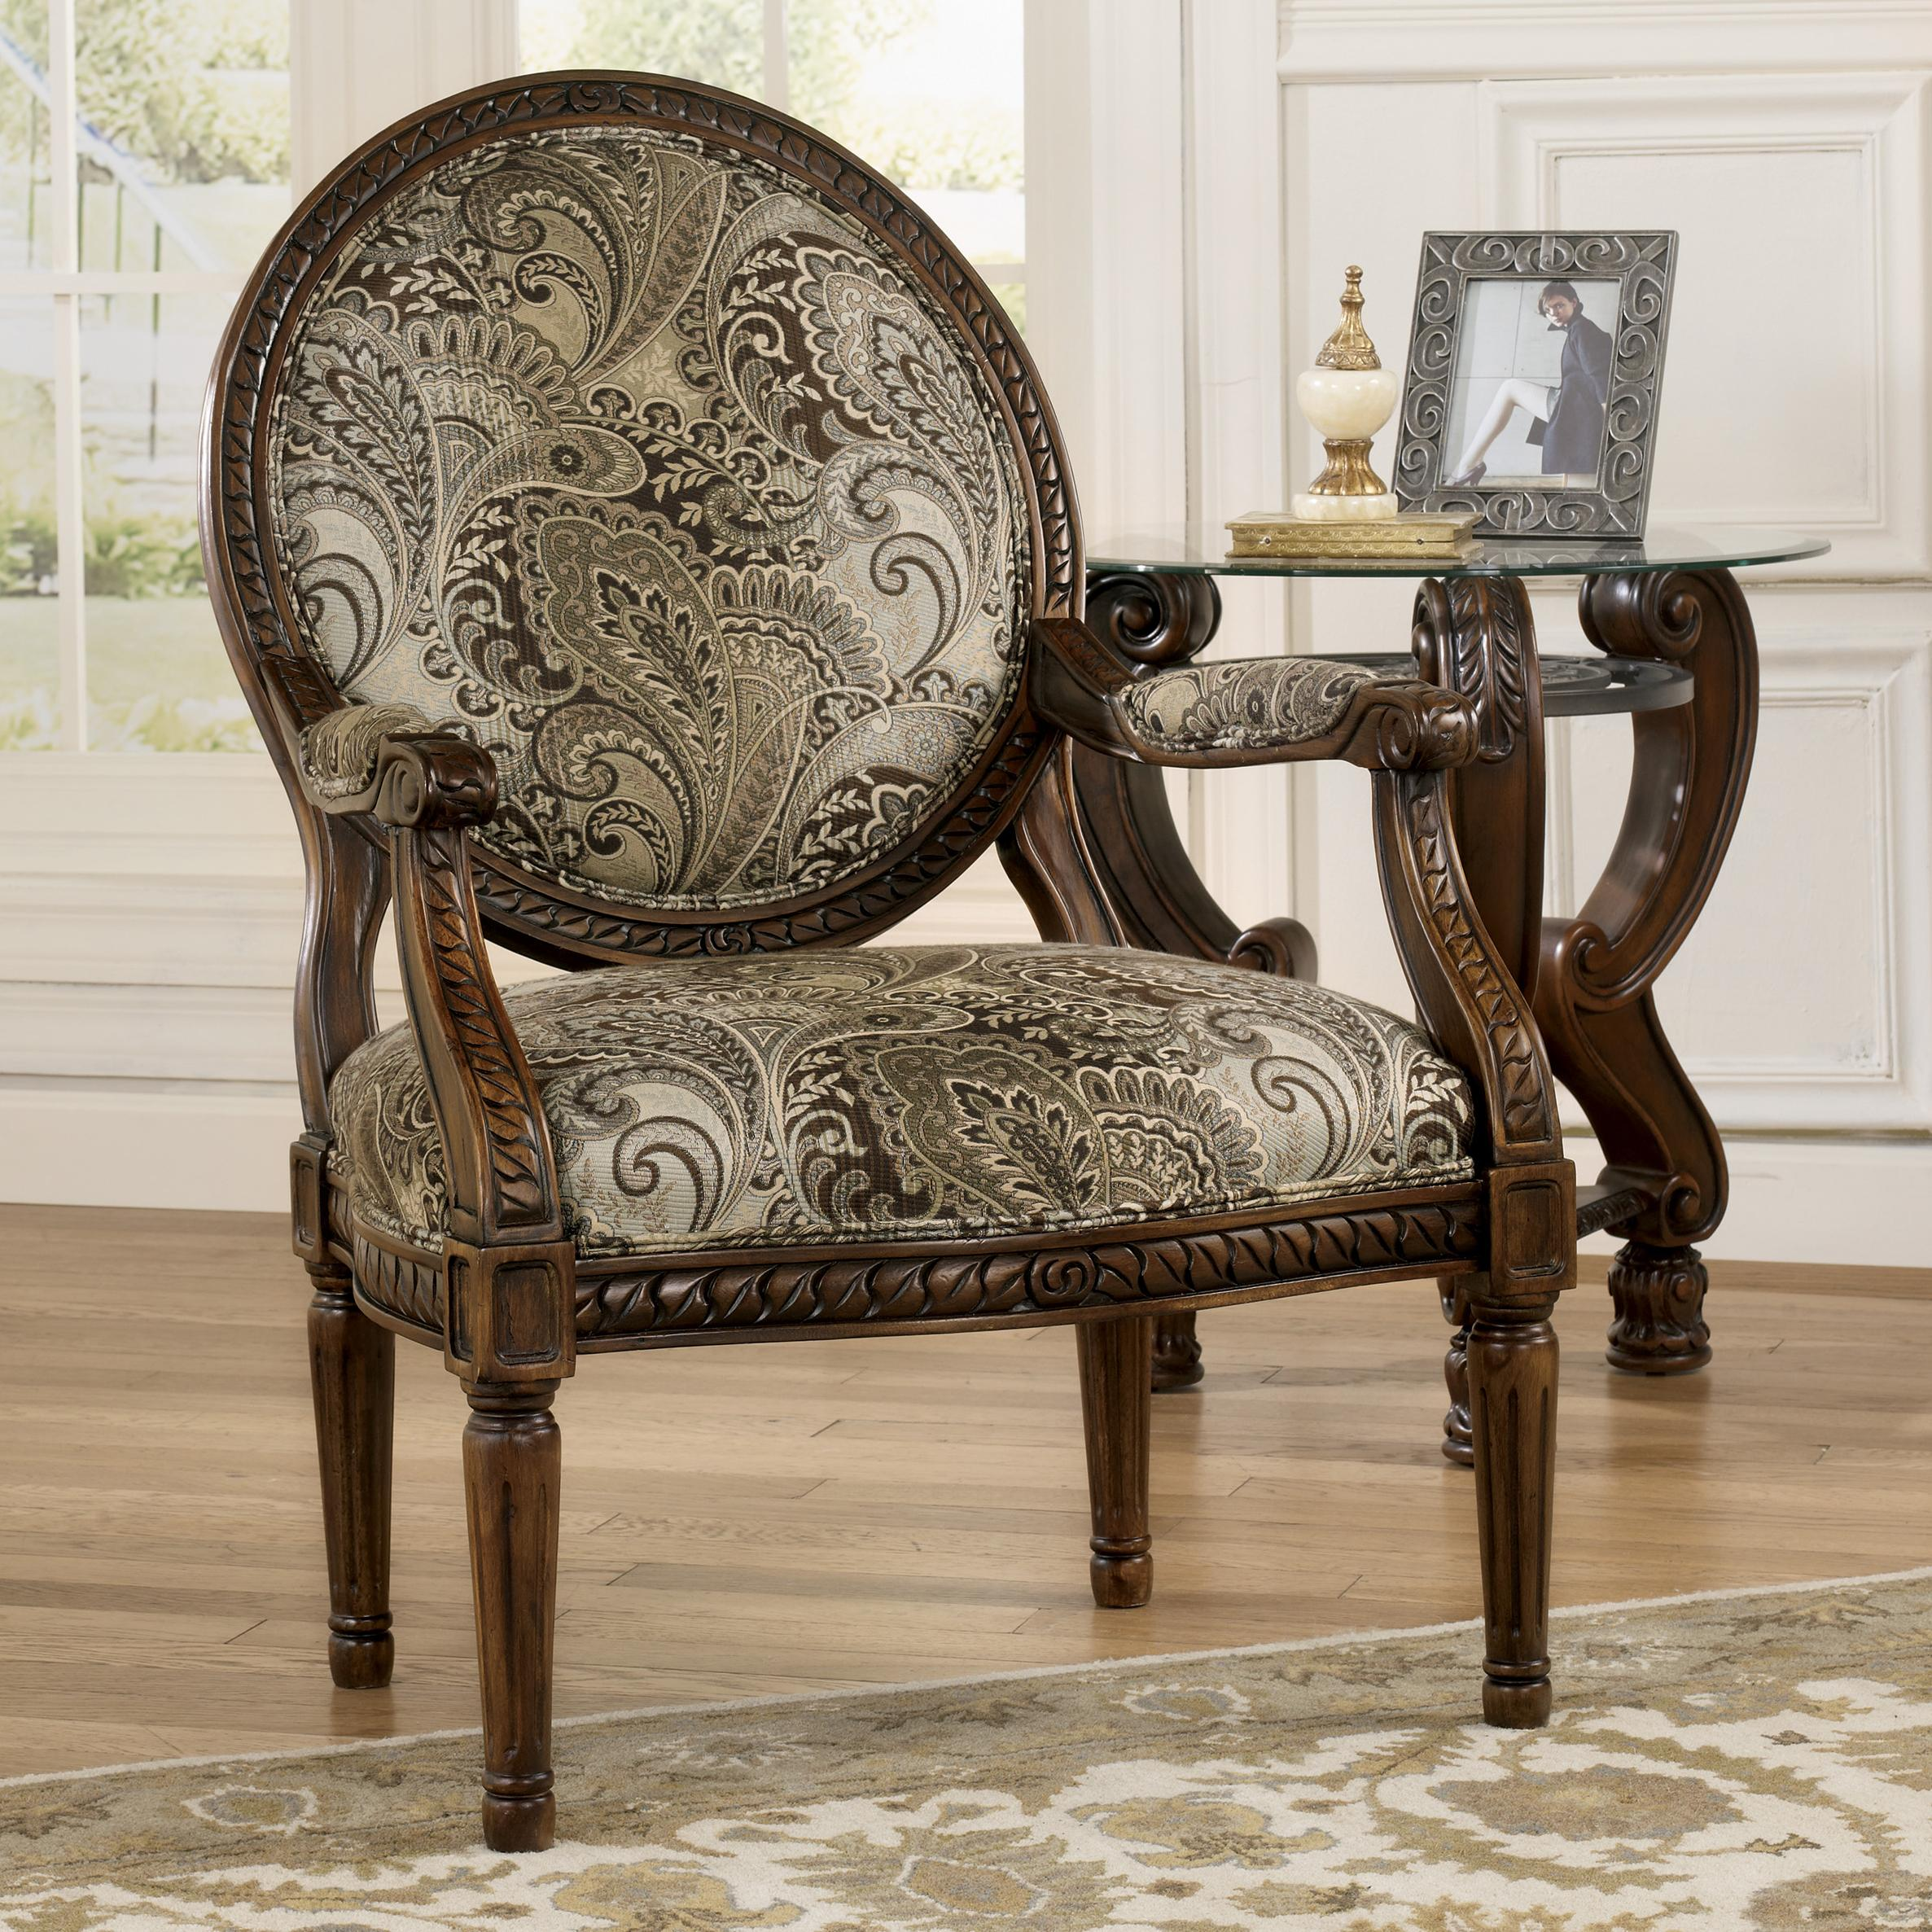 Signature Design by Ashley Martinsburg Showood Accent Chair - Item Number: 5730060